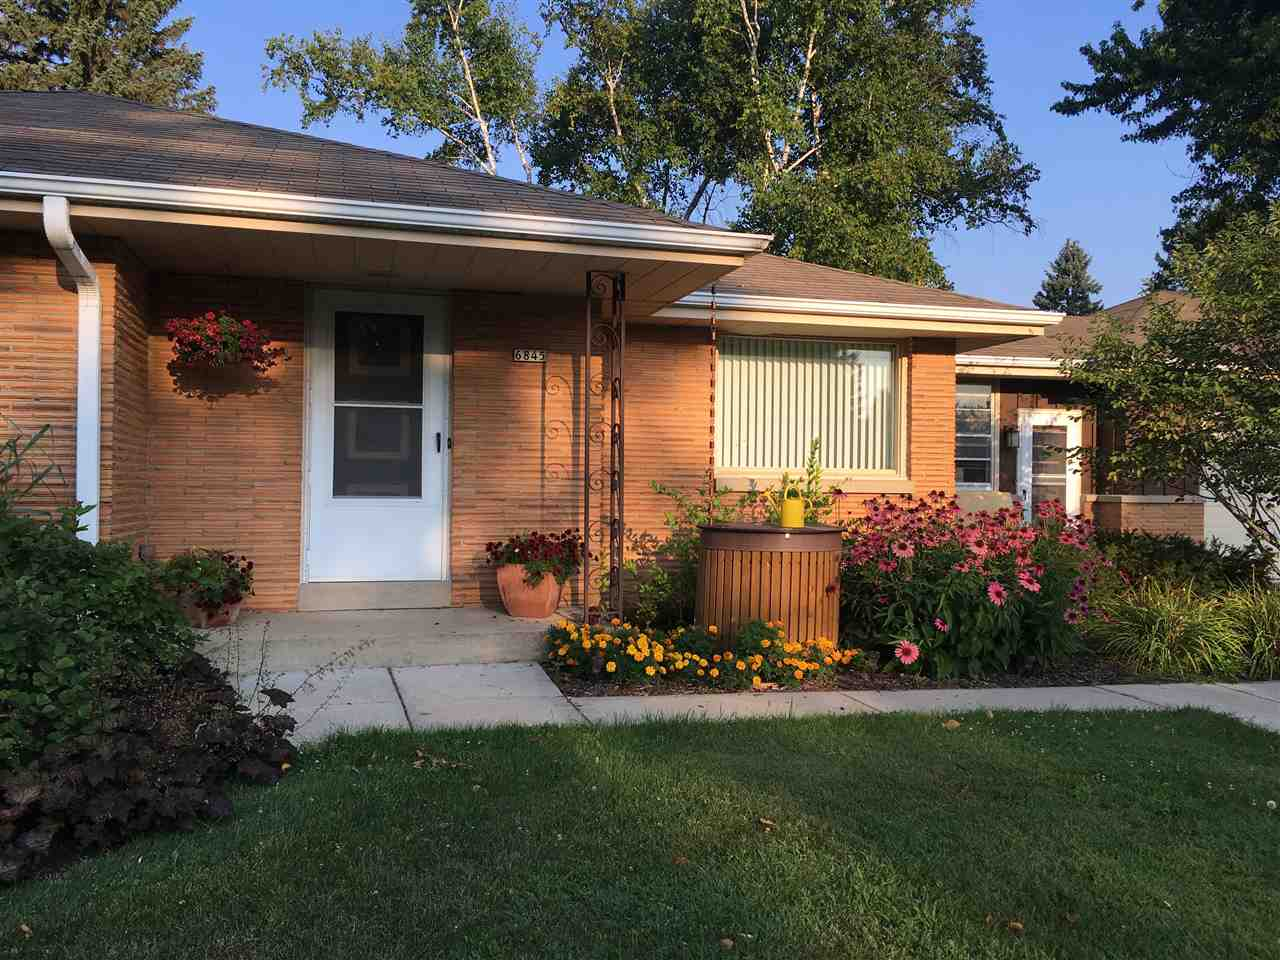 6845 N 102nd St, Milwaukee, Wisconsin 53224, 3 Bedrooms Bedrooms, ,1 BathroomBathrooms,Single Family,For Sale,6845 N 102nd St,1,1906784